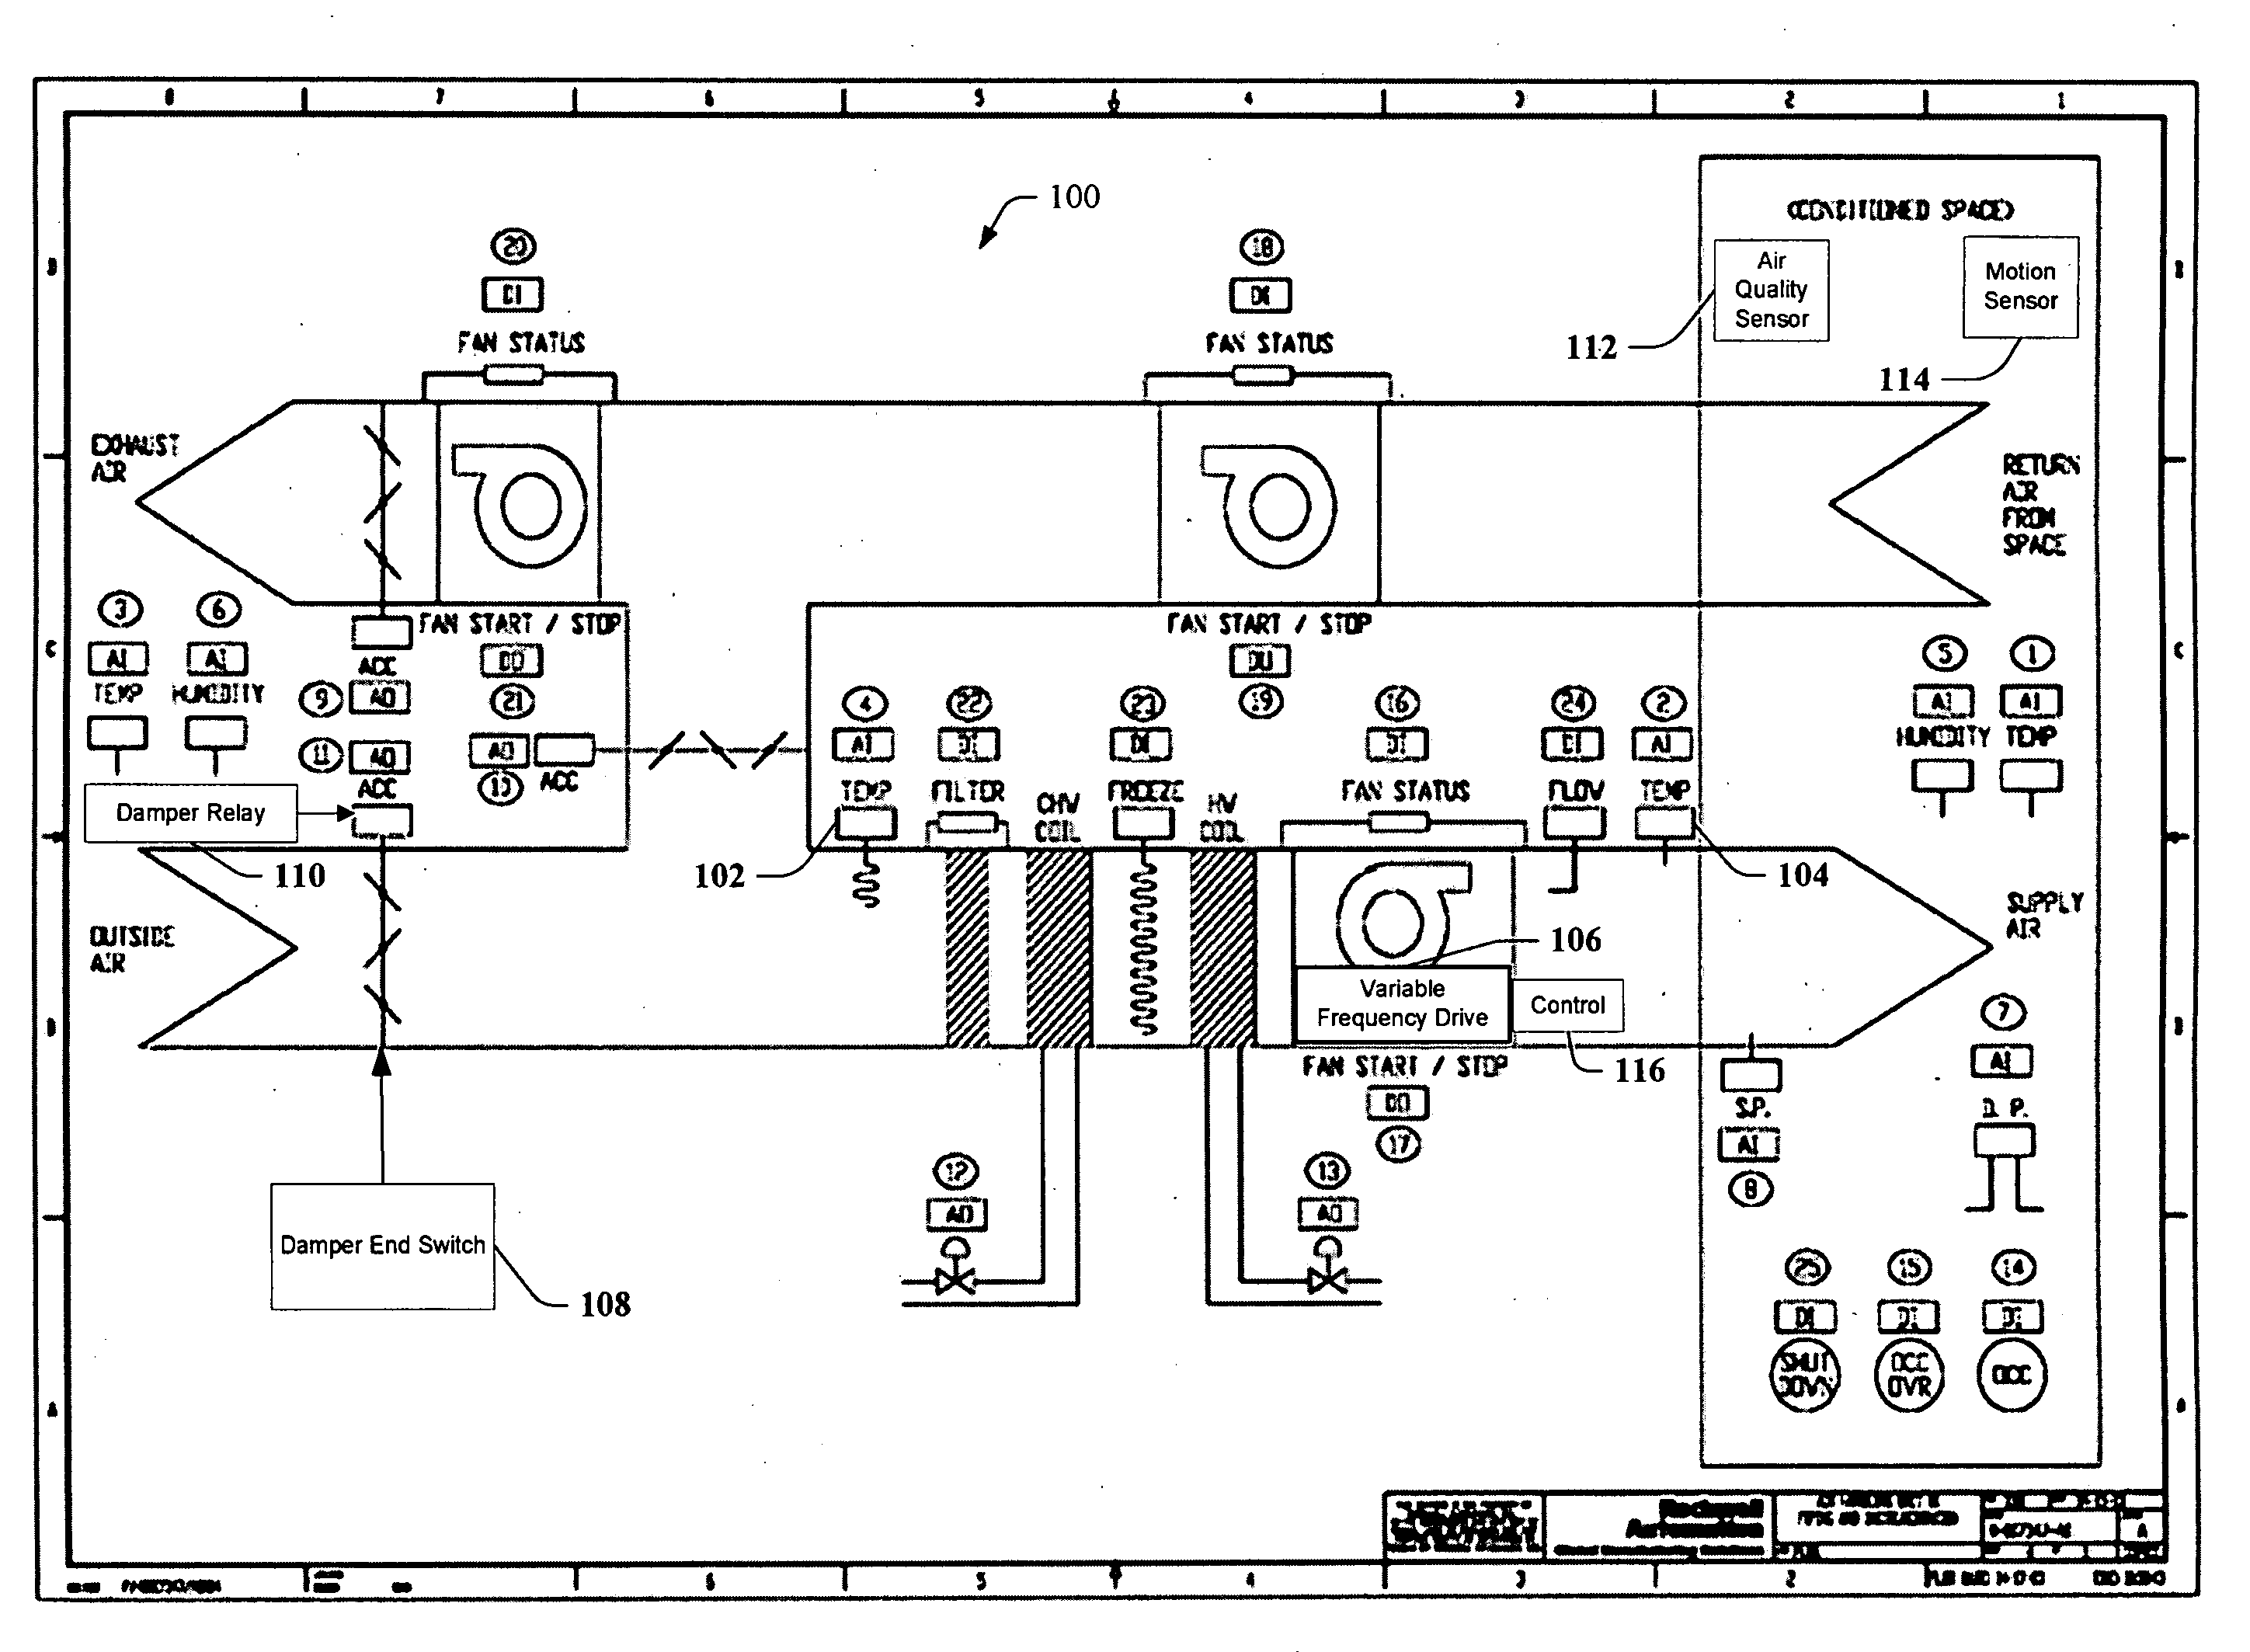 heat pump air handler wiring with Package Unit Wiring Diagram Electrical Diagrams For Air on Blower Door Interlock Switch furthermore Post goodman Aruf Wiring Diagram 514561 moreover Honeywell Smart Switch Wiring Diagram furthermore Home Air Conditioner Electrical Diagram additionally Trane Xe90 Furnace Thermostat Wiring Diagrams.